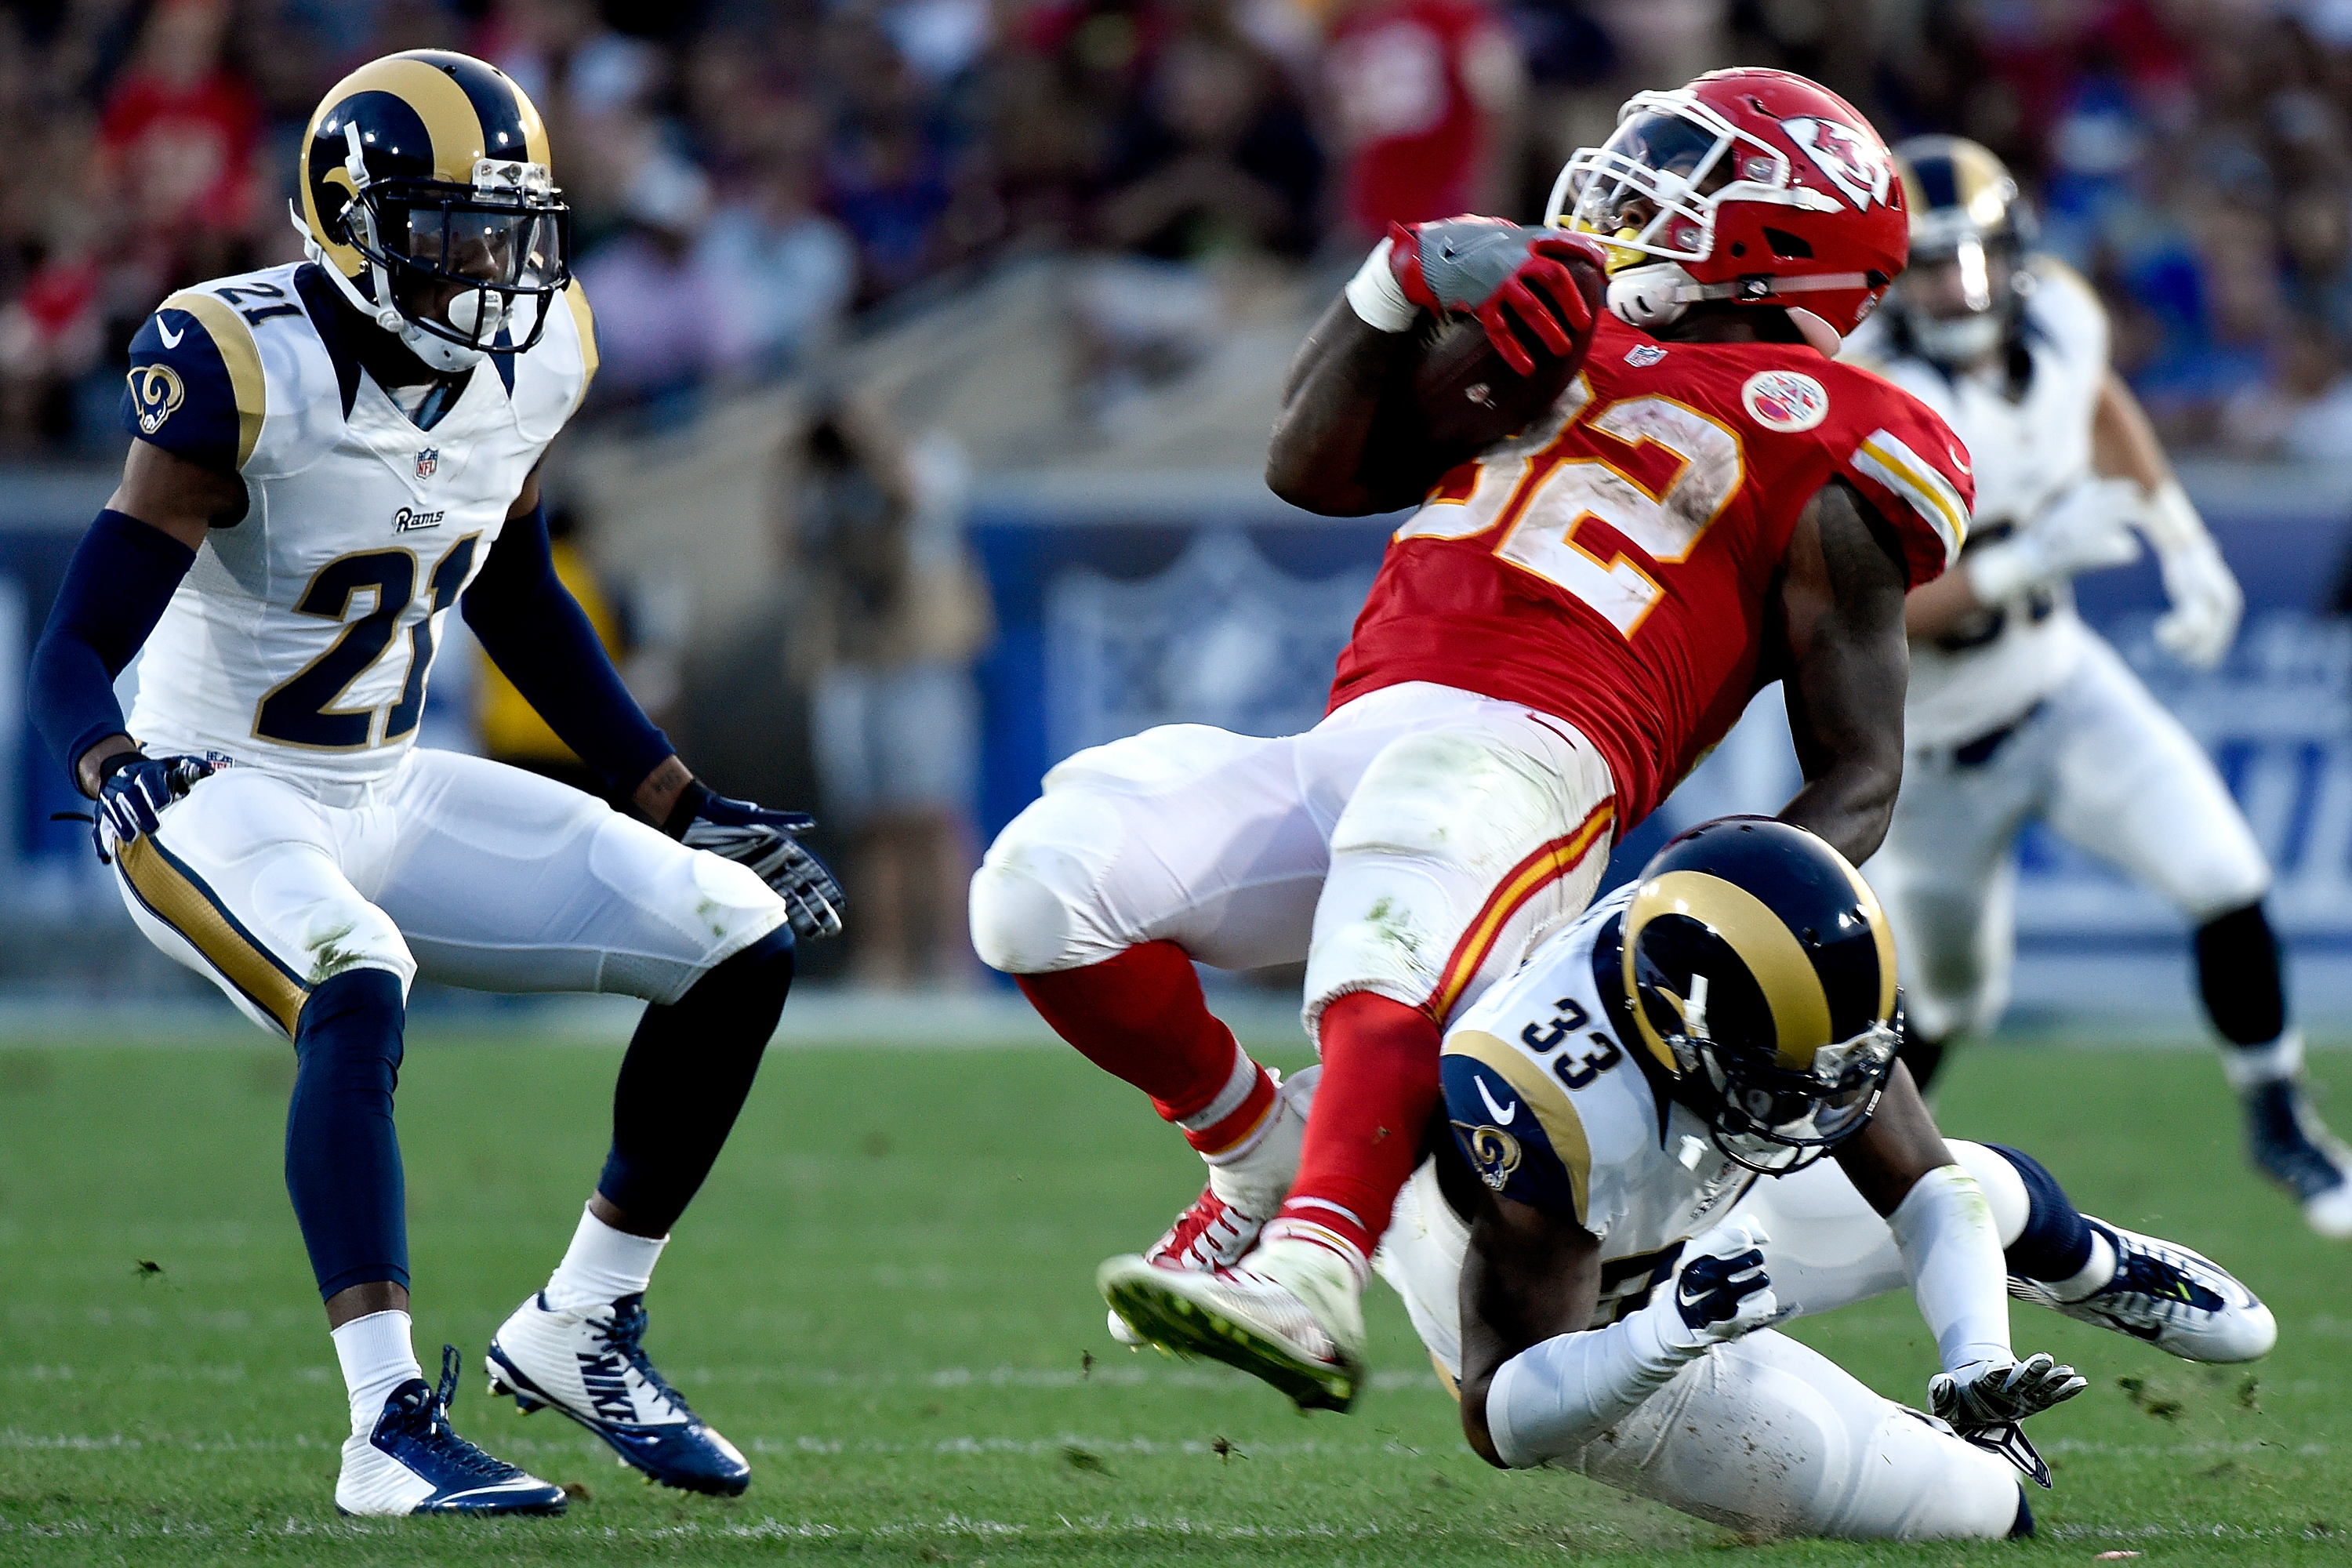 Spencer Ware of the Kansas City Chiefs completes a pass in the second quarter against the Los Angeles Rams at Los Angeles Memorial Coliseum on August 20, 2016. (credit: Lisa Blumenfeld/Getty Images)